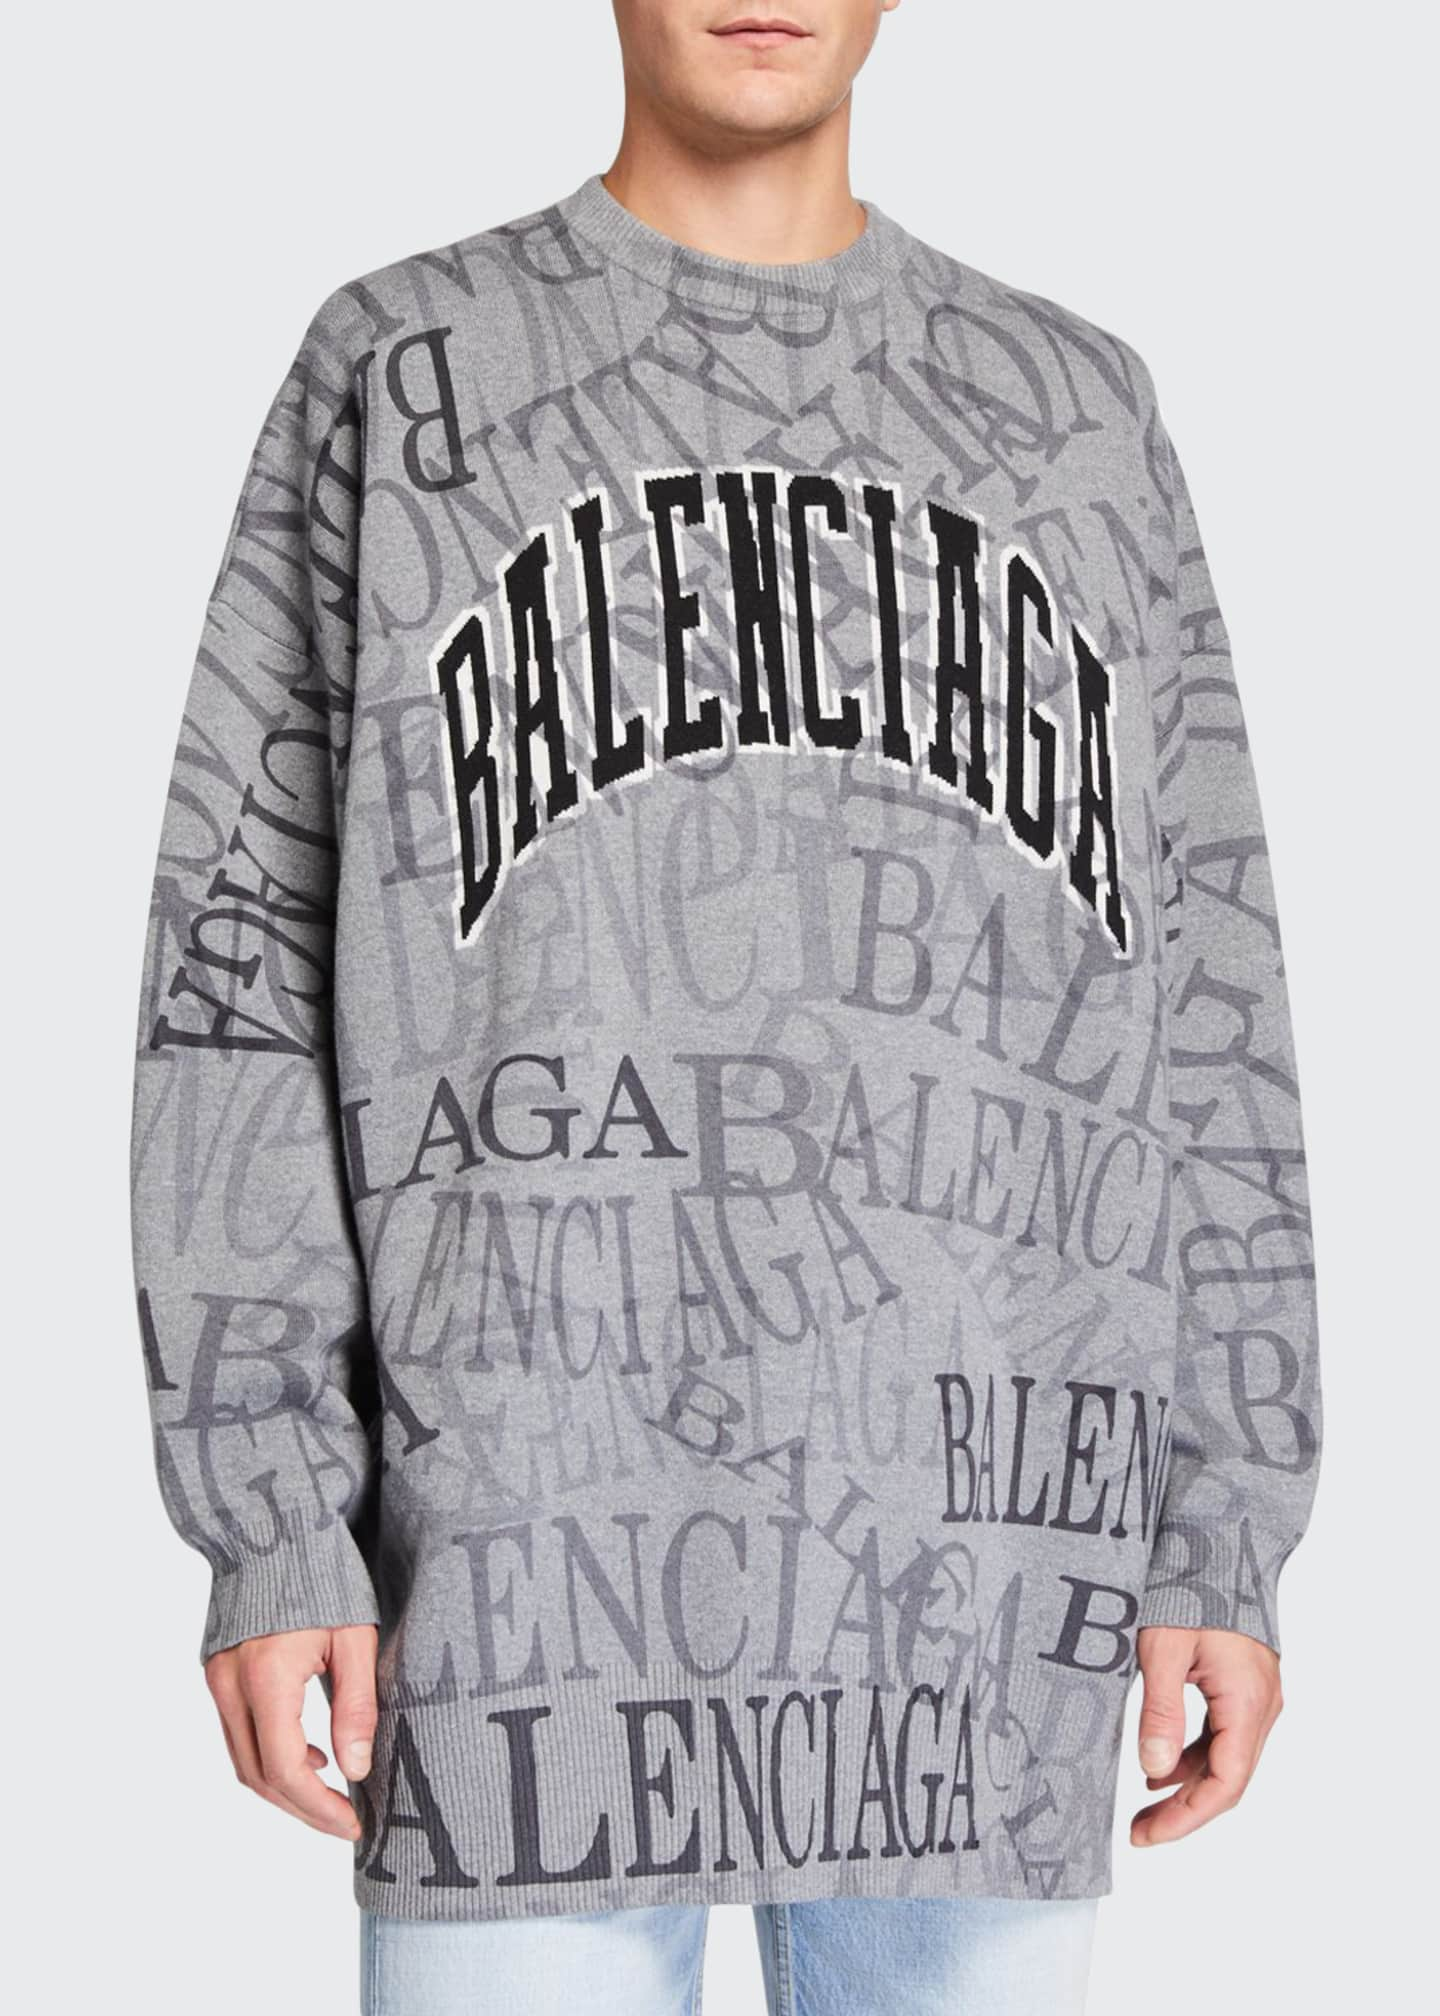 Balenciaga Men's Oversized Logo Typographic Sweater